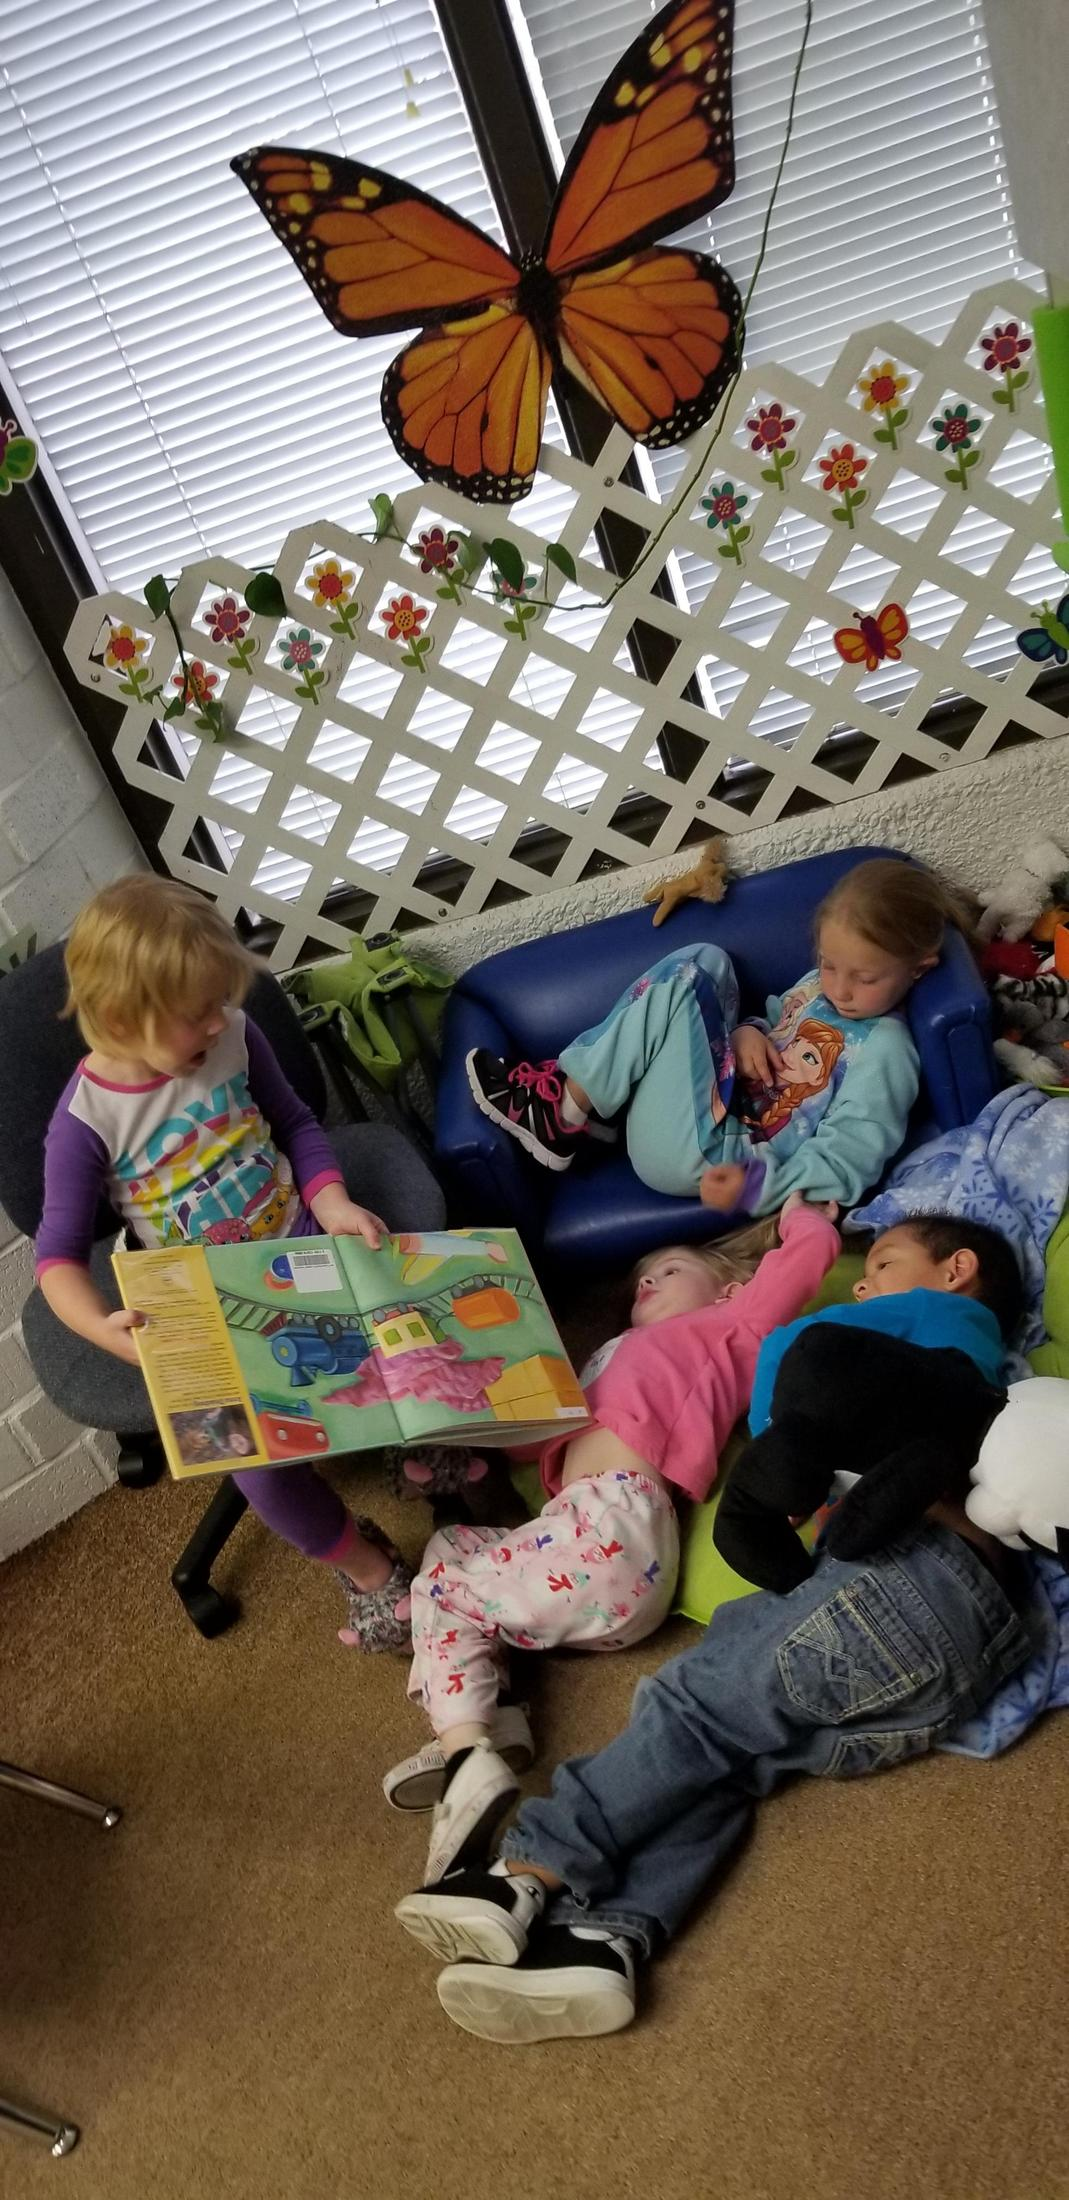 Girl reading to classmates in library